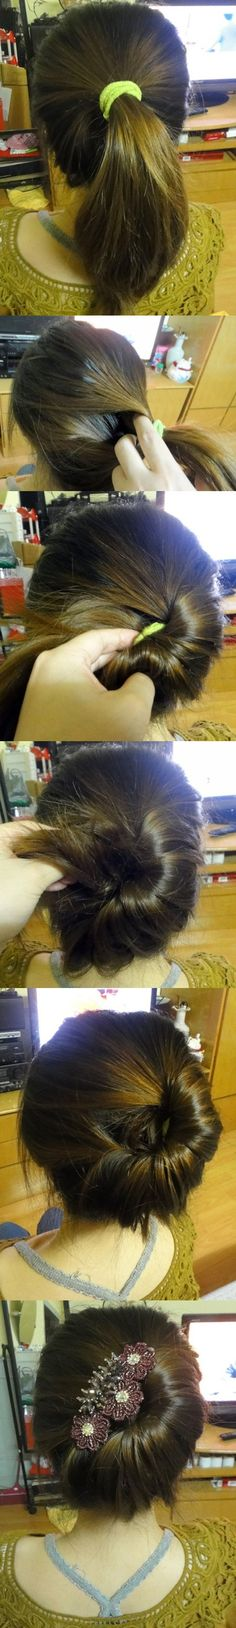 Simple yet adorable up-do